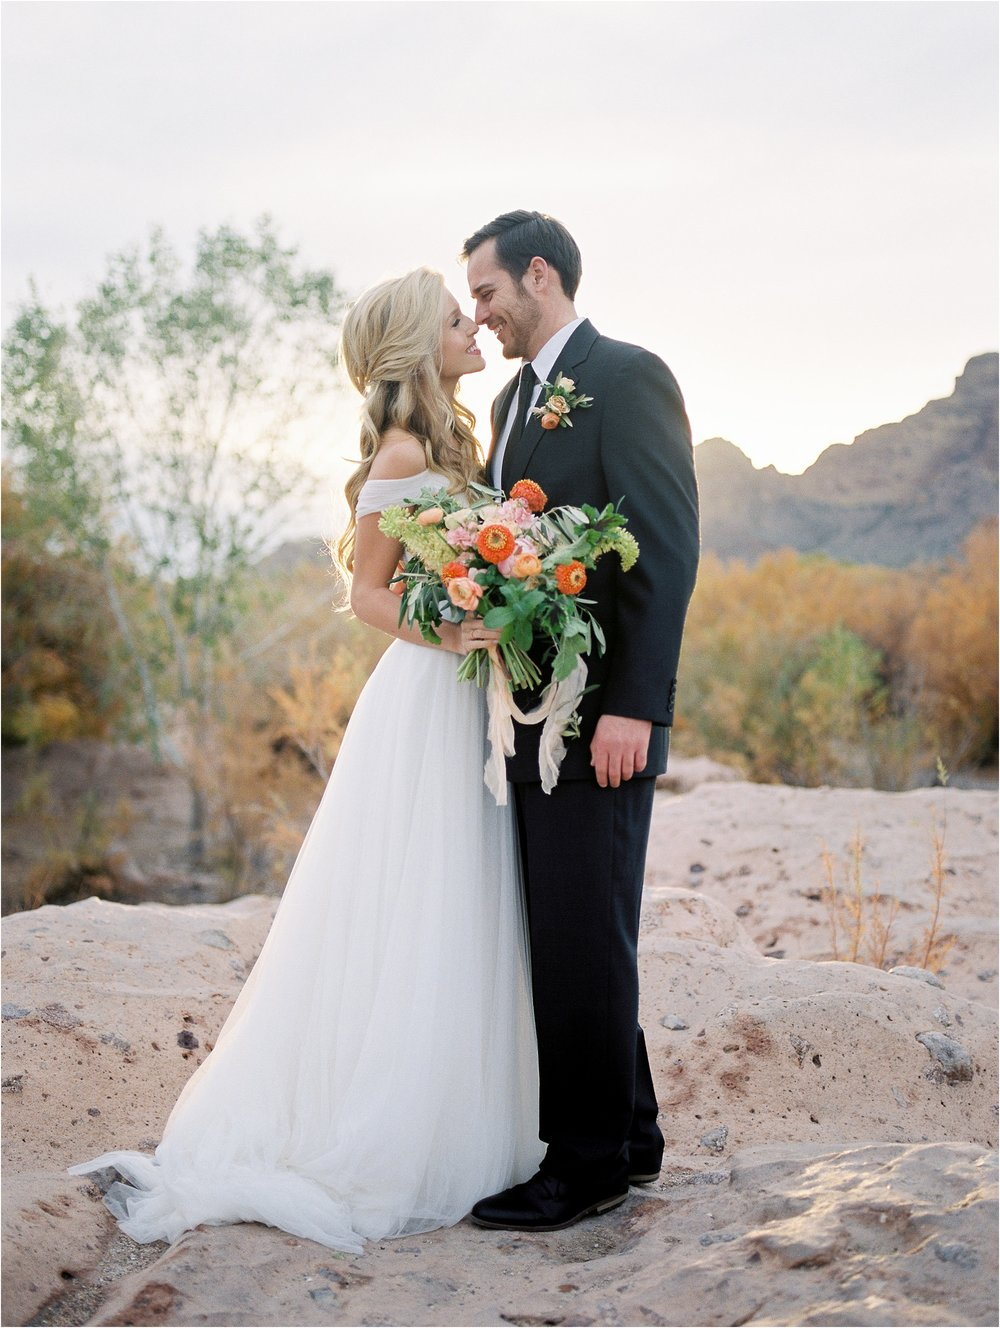 Sarah Jane Photography Film Hybrid Scottsdale Phoenix Arizona Destination Wedding Photographer Ally Ryan Desert_0025.jpg